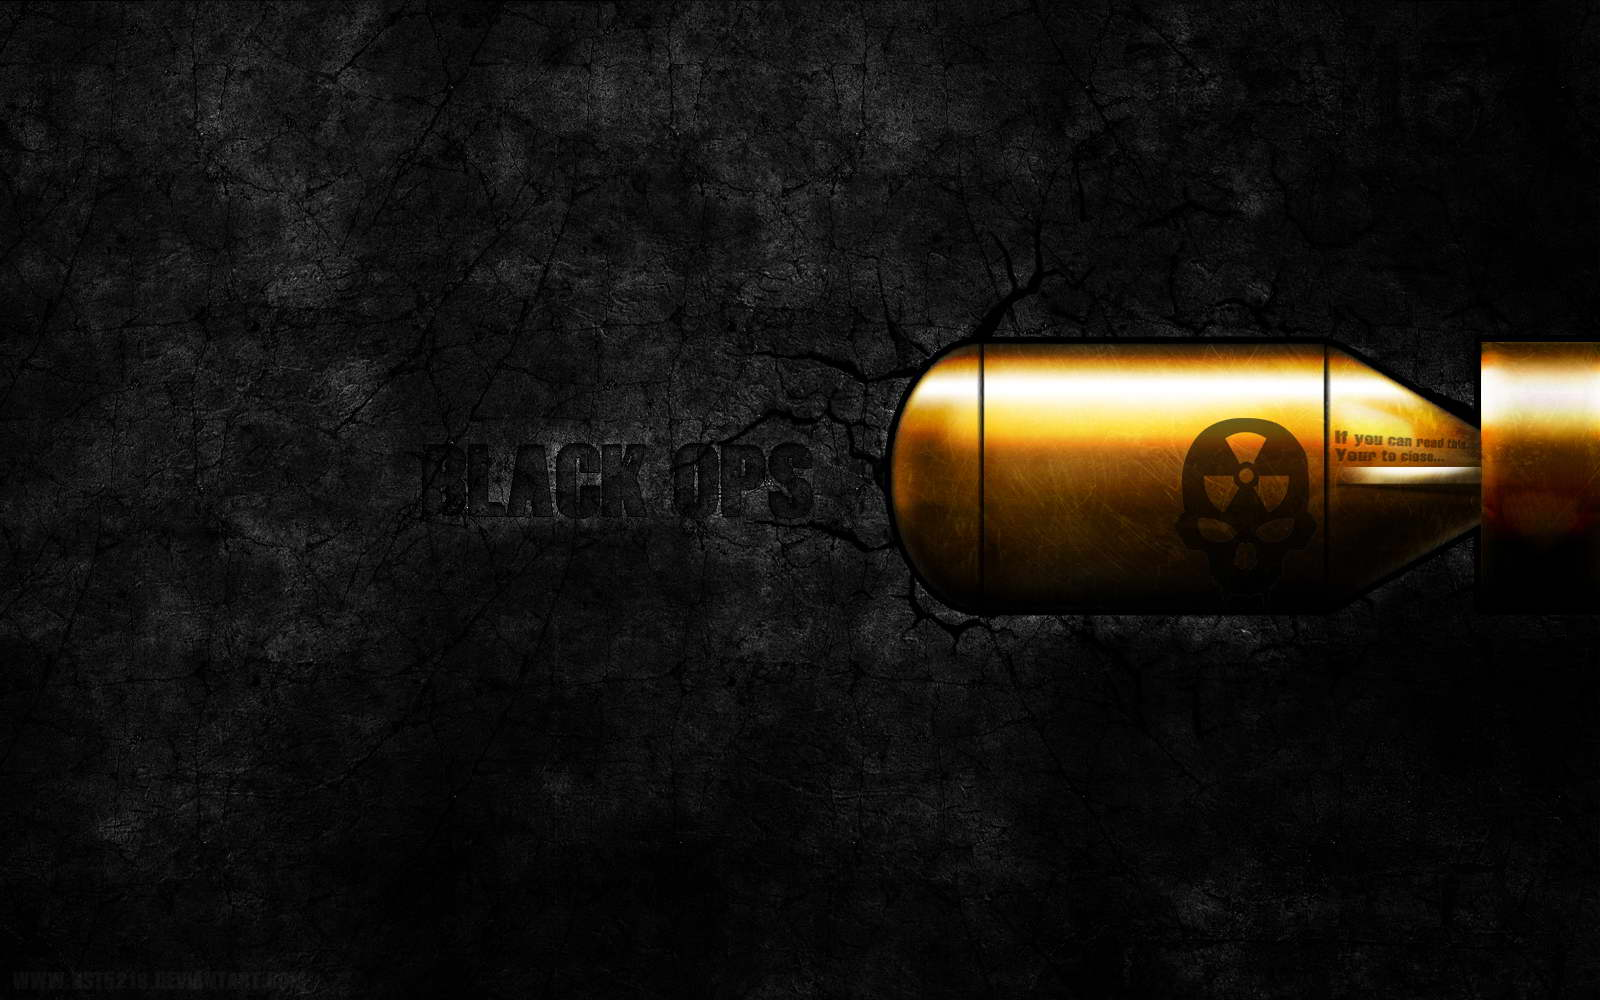 Free Download Hd Wallpapers Call Of Duty Black Ops 2 Hd Wallpapers